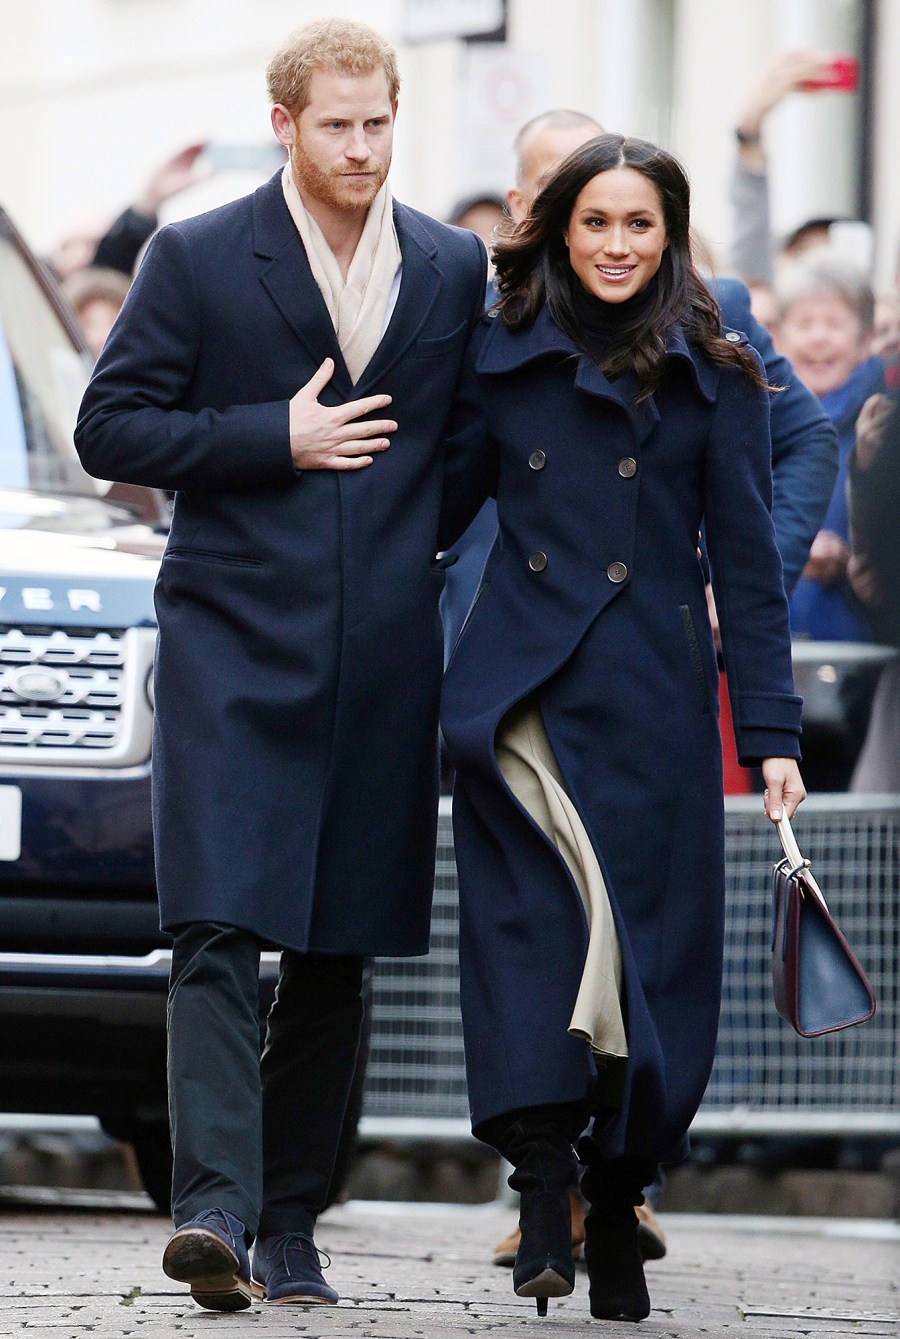 Prince Harry and Meghan Markle Shut Down Sussex Royal Charity